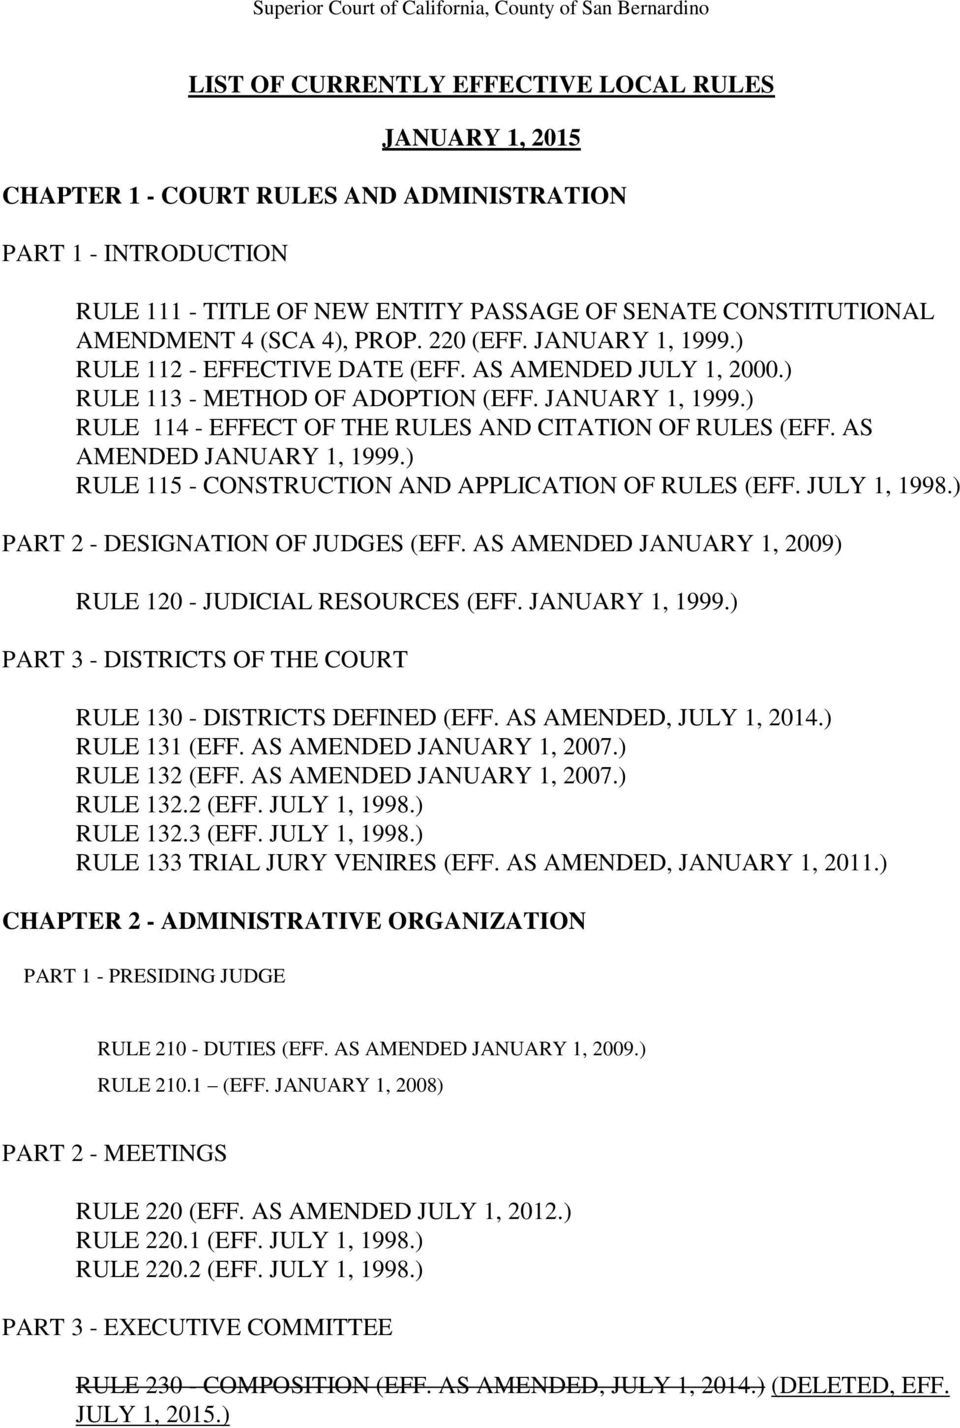 AS AMENDED JANUARY 1, 1999.) RULE 115 - CONSTRUCTION AND APPLICATION OF RULES (EFF. JULY 1, 1998.) PART 2 - DESIGNATION OF JUDGES (EFF. AS AMENDED JANUARY 1, 2009) RULE 120 - JUDICIAL RESOURCES (EFF.